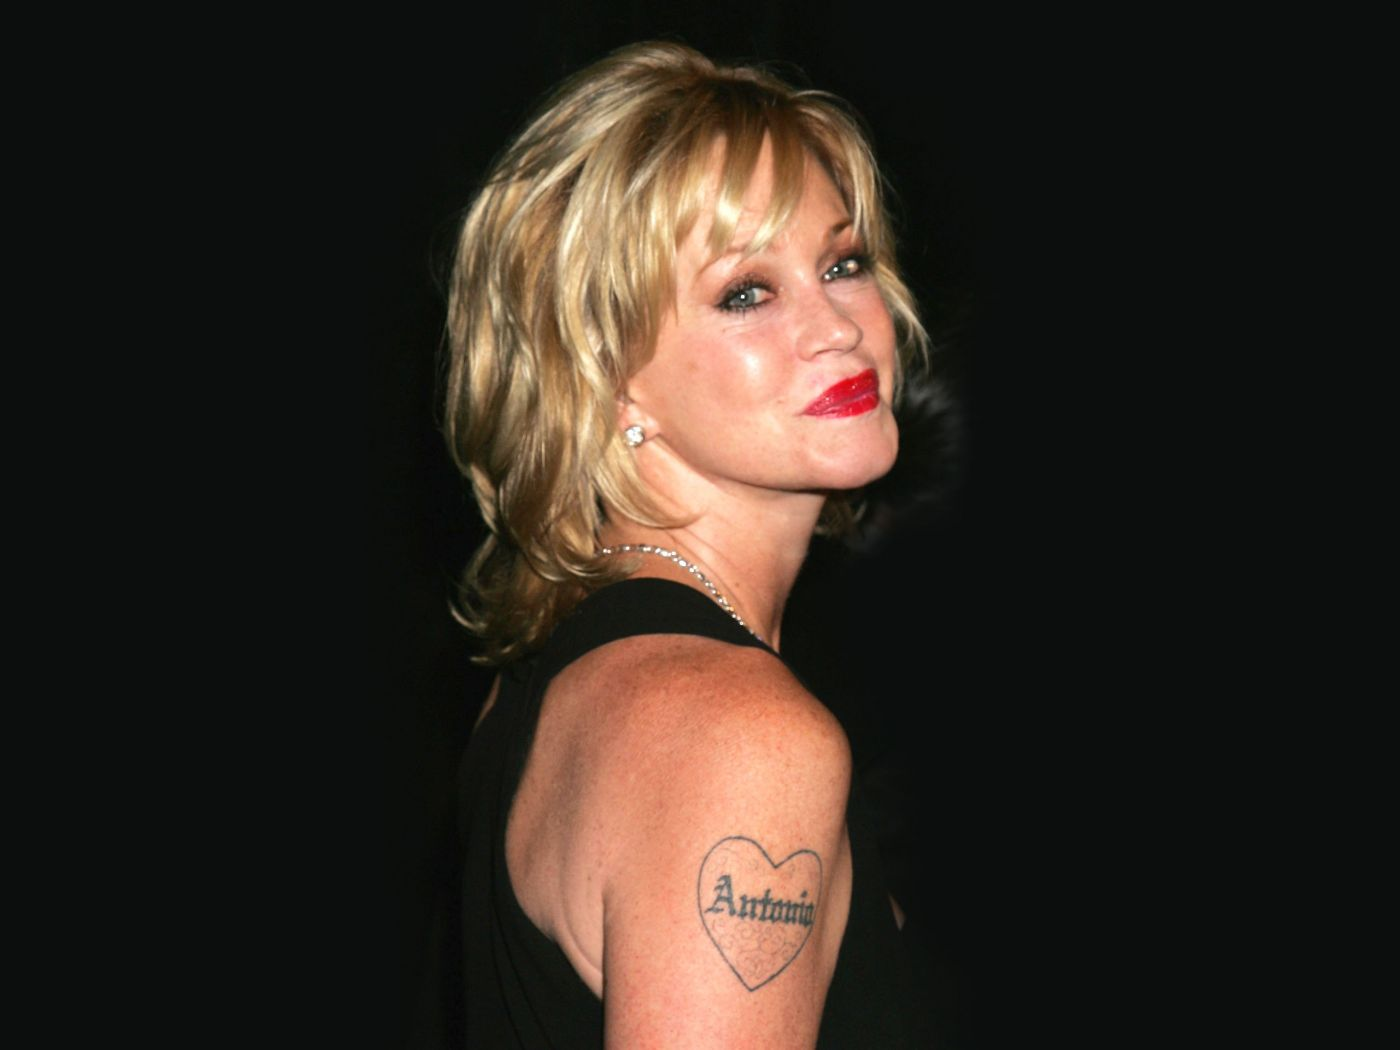 Melanie Griffith's quote #2